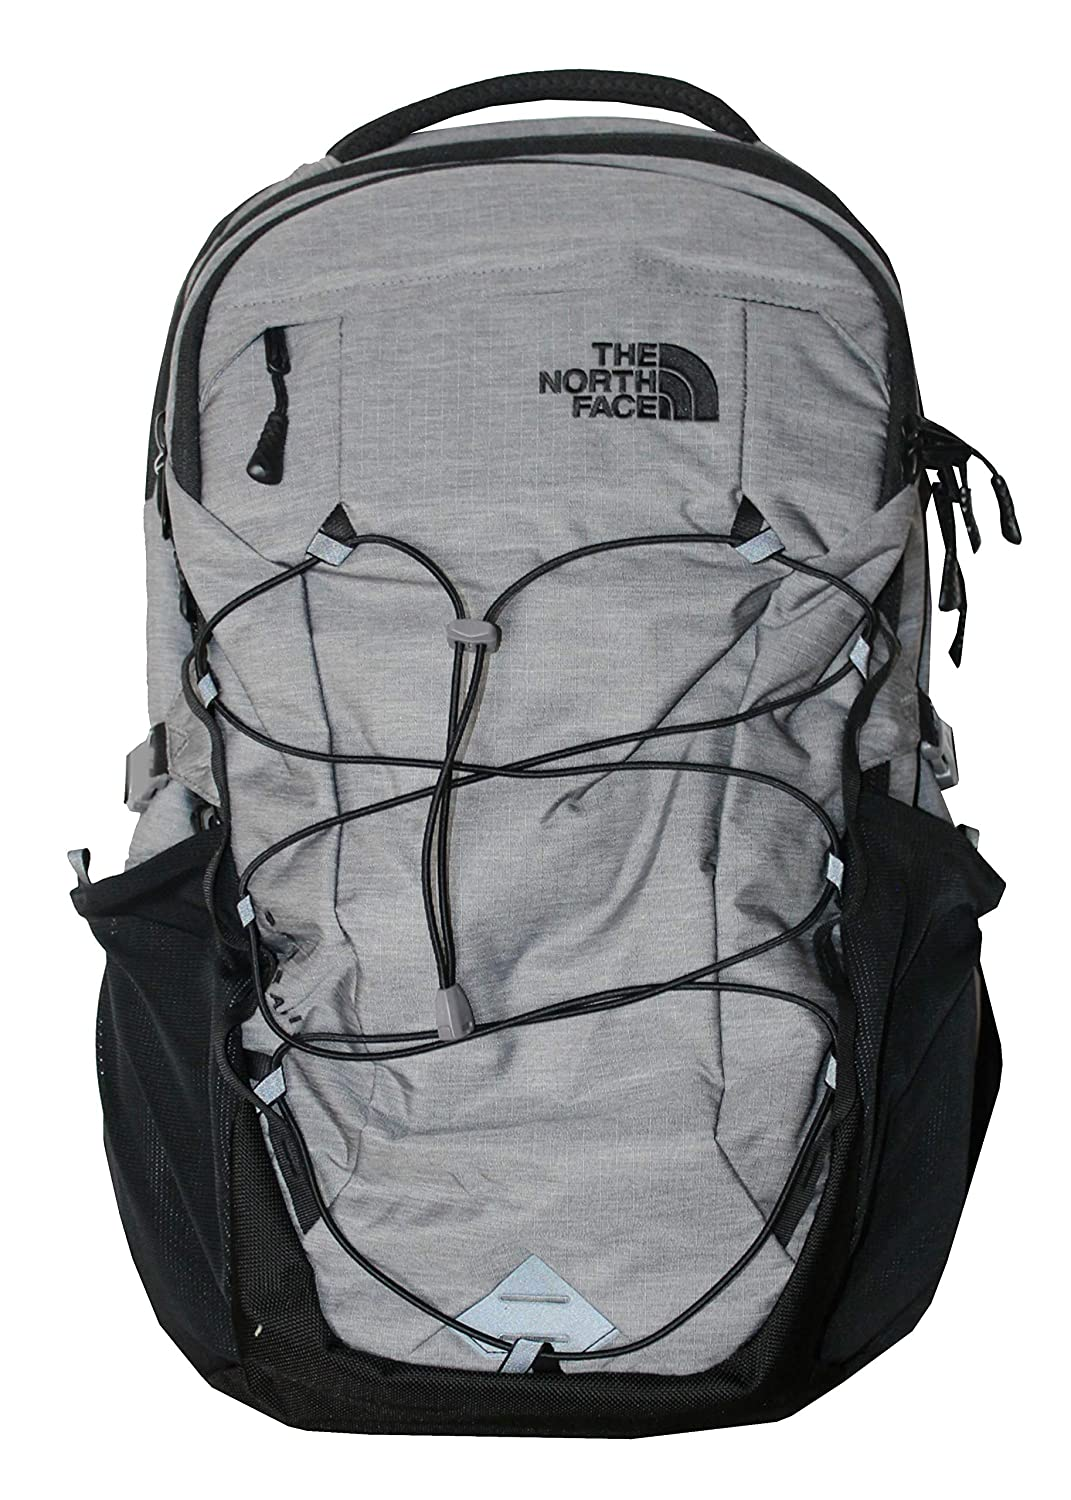 044d1da42 Amazon.com: The North Face Men's Borealis Backpack Laptop School Bag ...